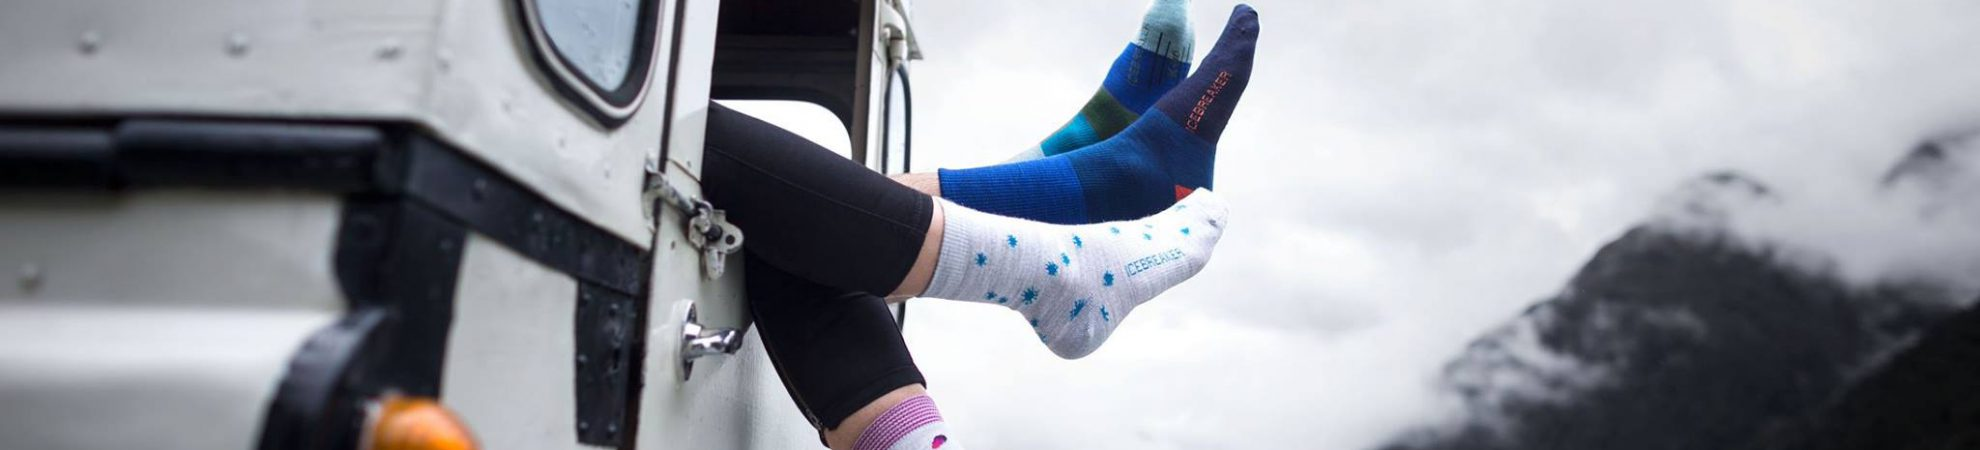 Hiking socks: 6 of the Best